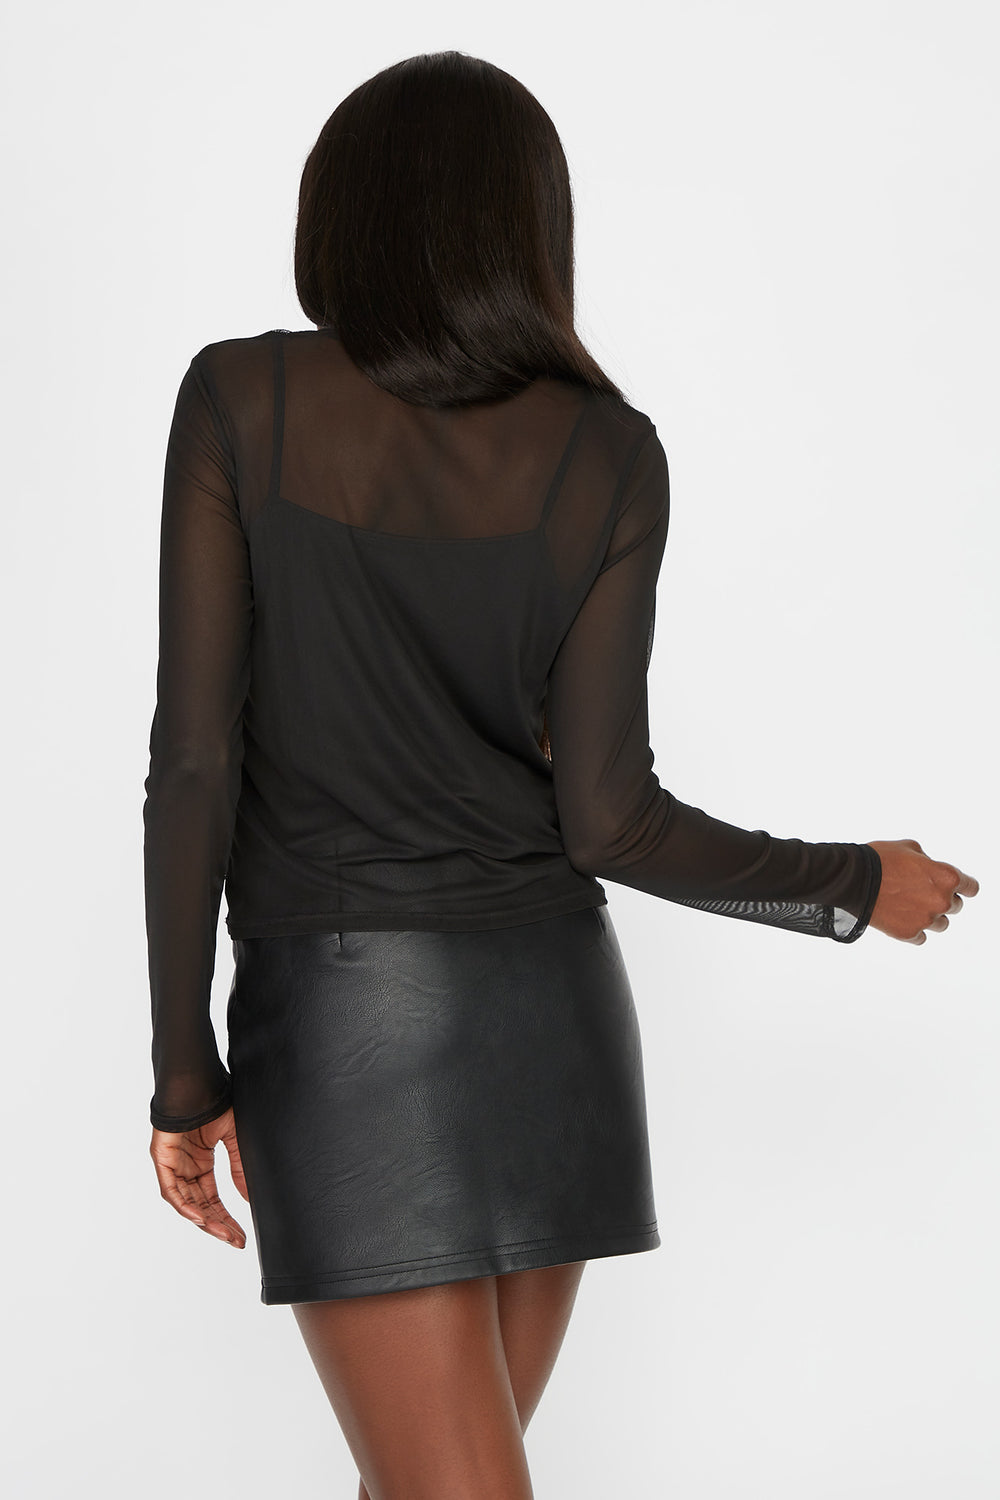 Mesh Long Sleeve with Camisole Black